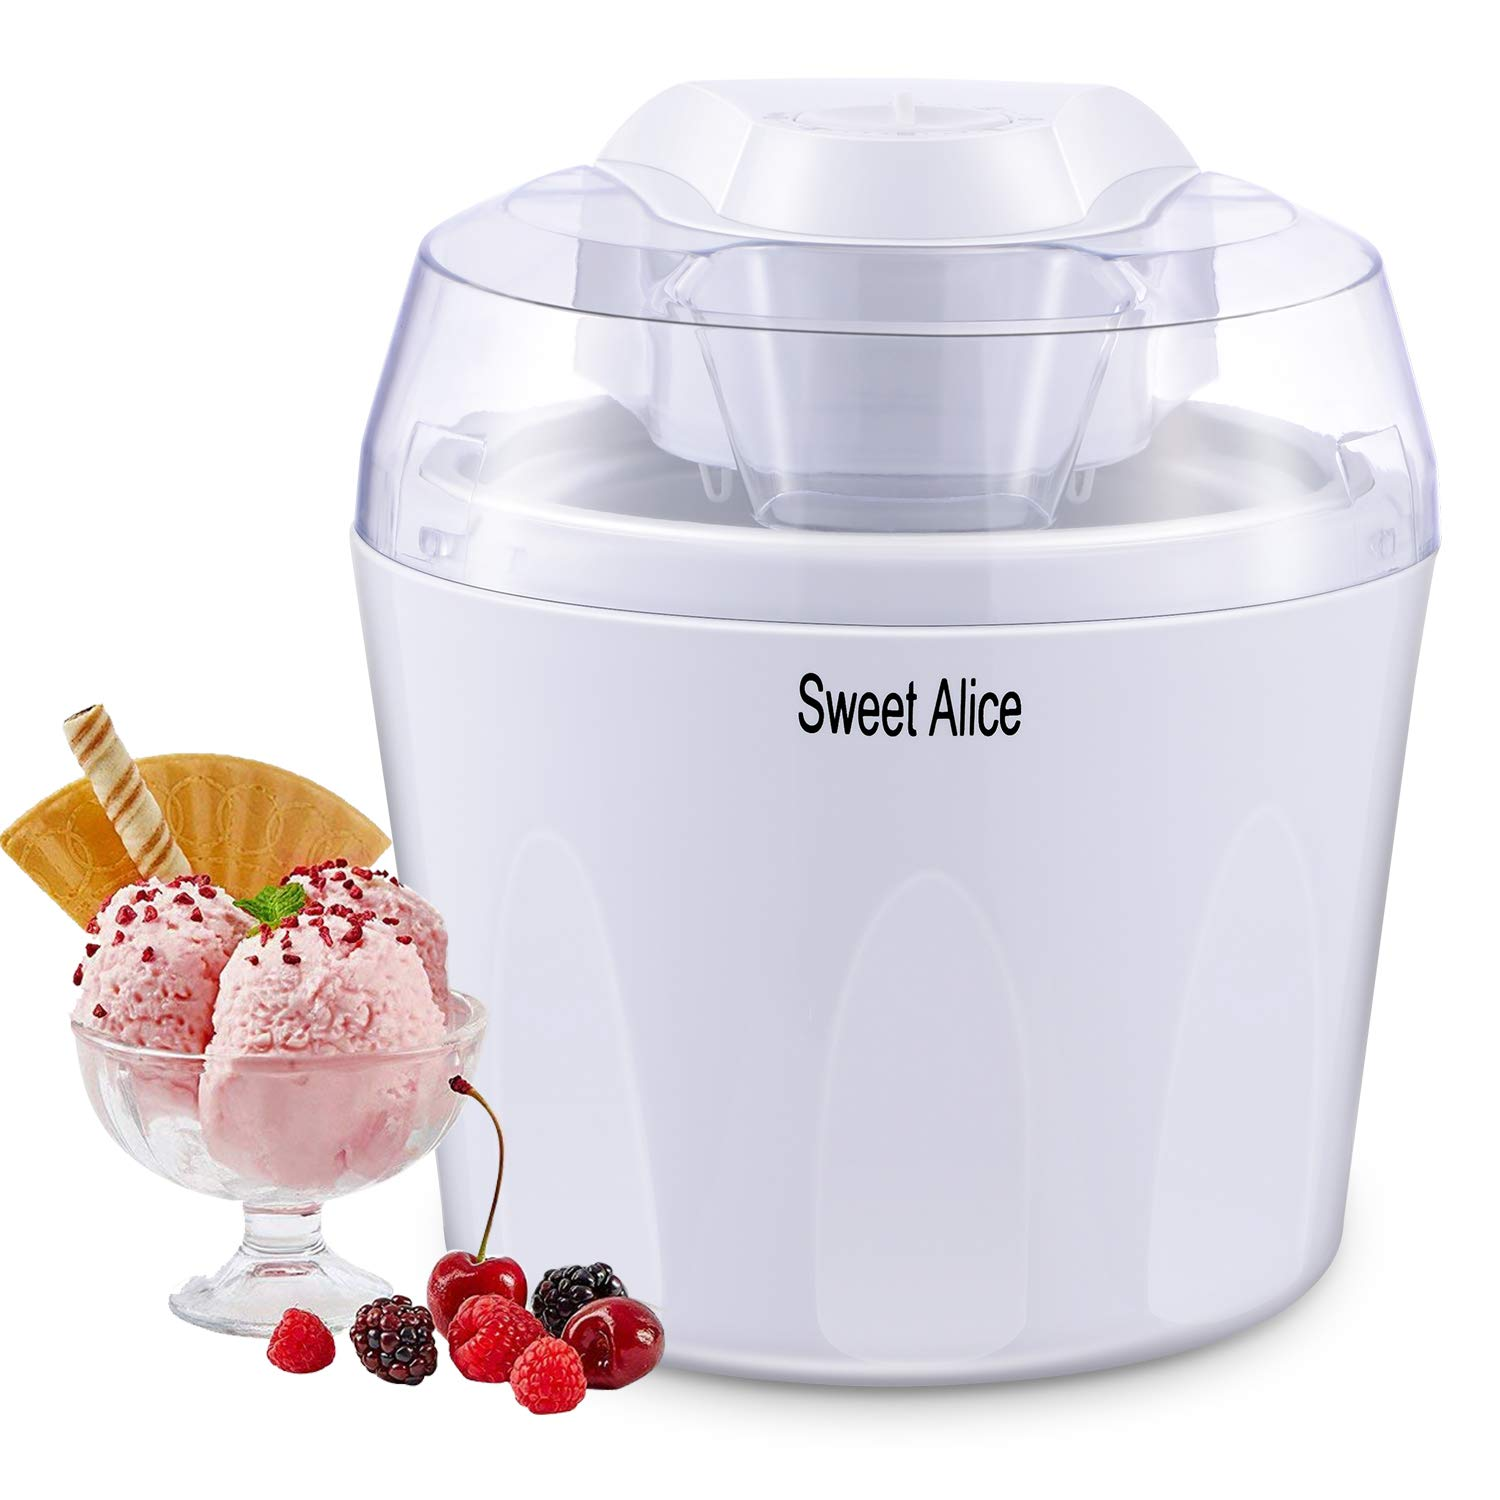 Ice Cream Maker, BPA-free 1.5L Electric Ice Cream Gelato Frozen Yoghurt Sorbet Machine with Mixing Paddle and Auto Shut-off Timer